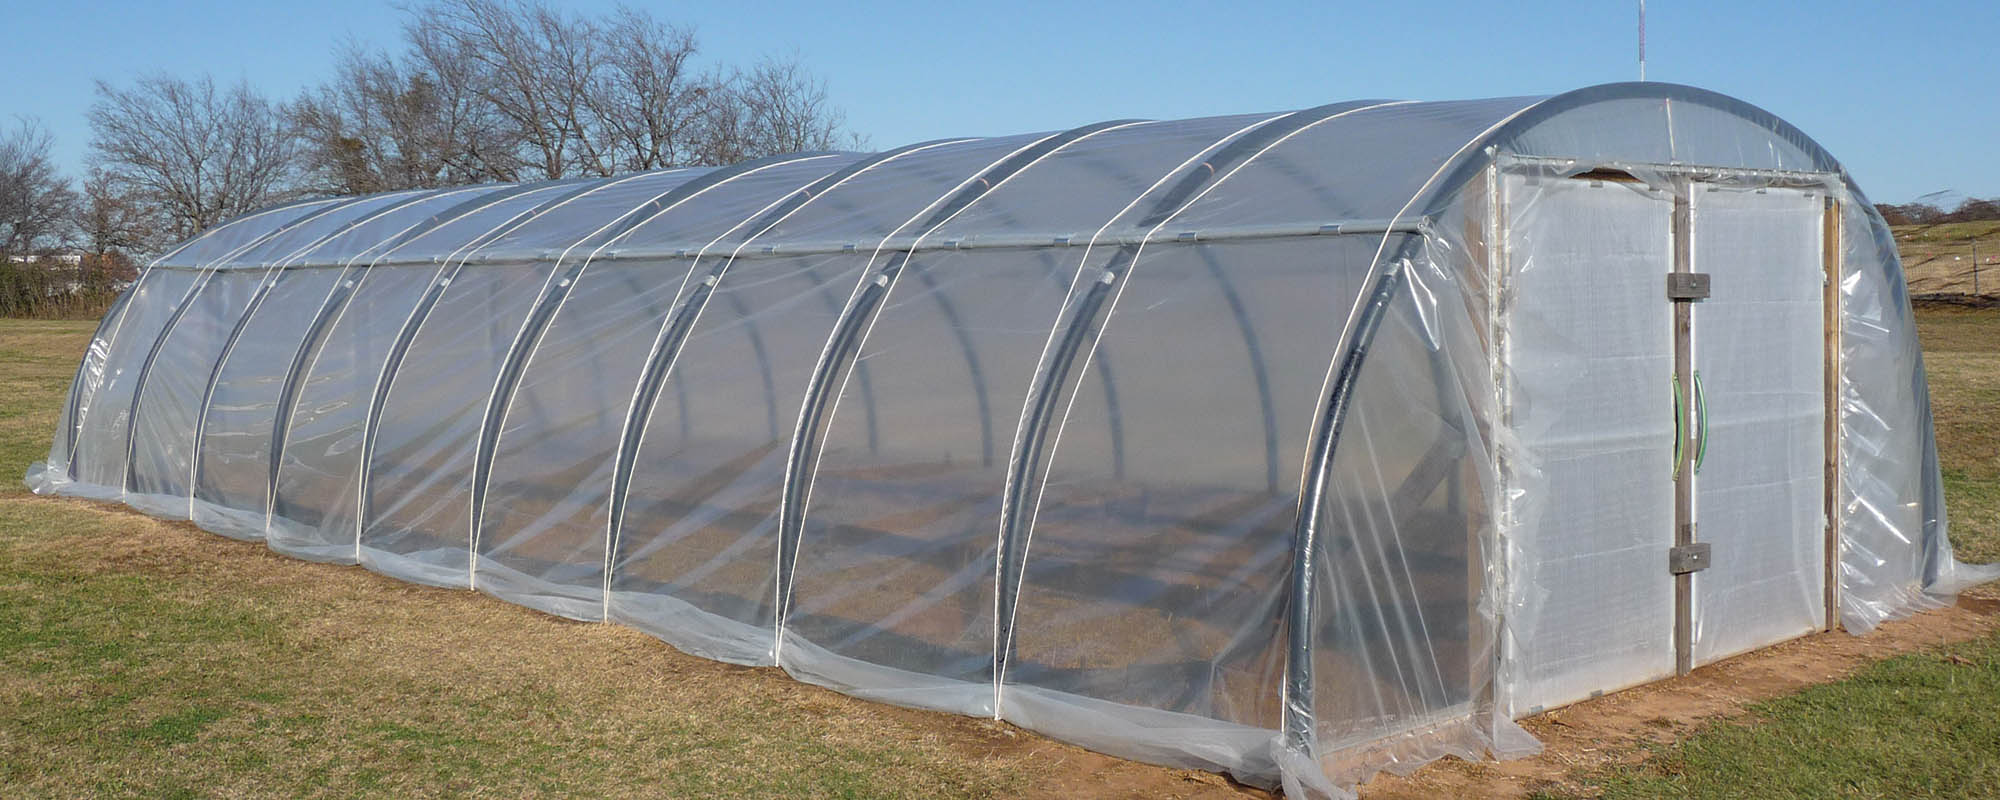 Outstanding hoop house plans photos best inspiration for Portable greenhouse plans